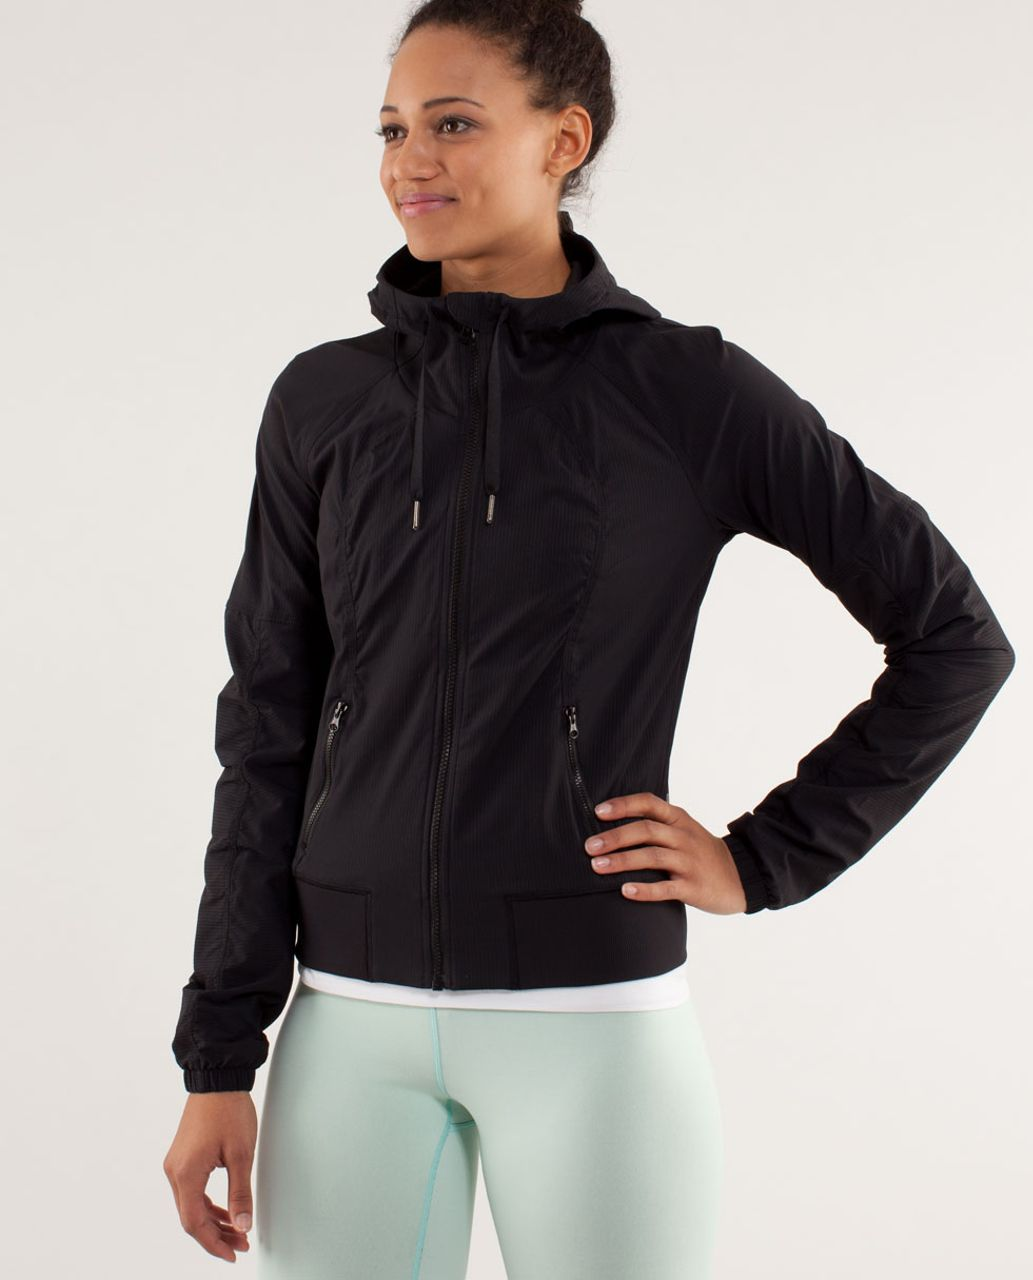 Lululemon Street To Studio Jacket - Black